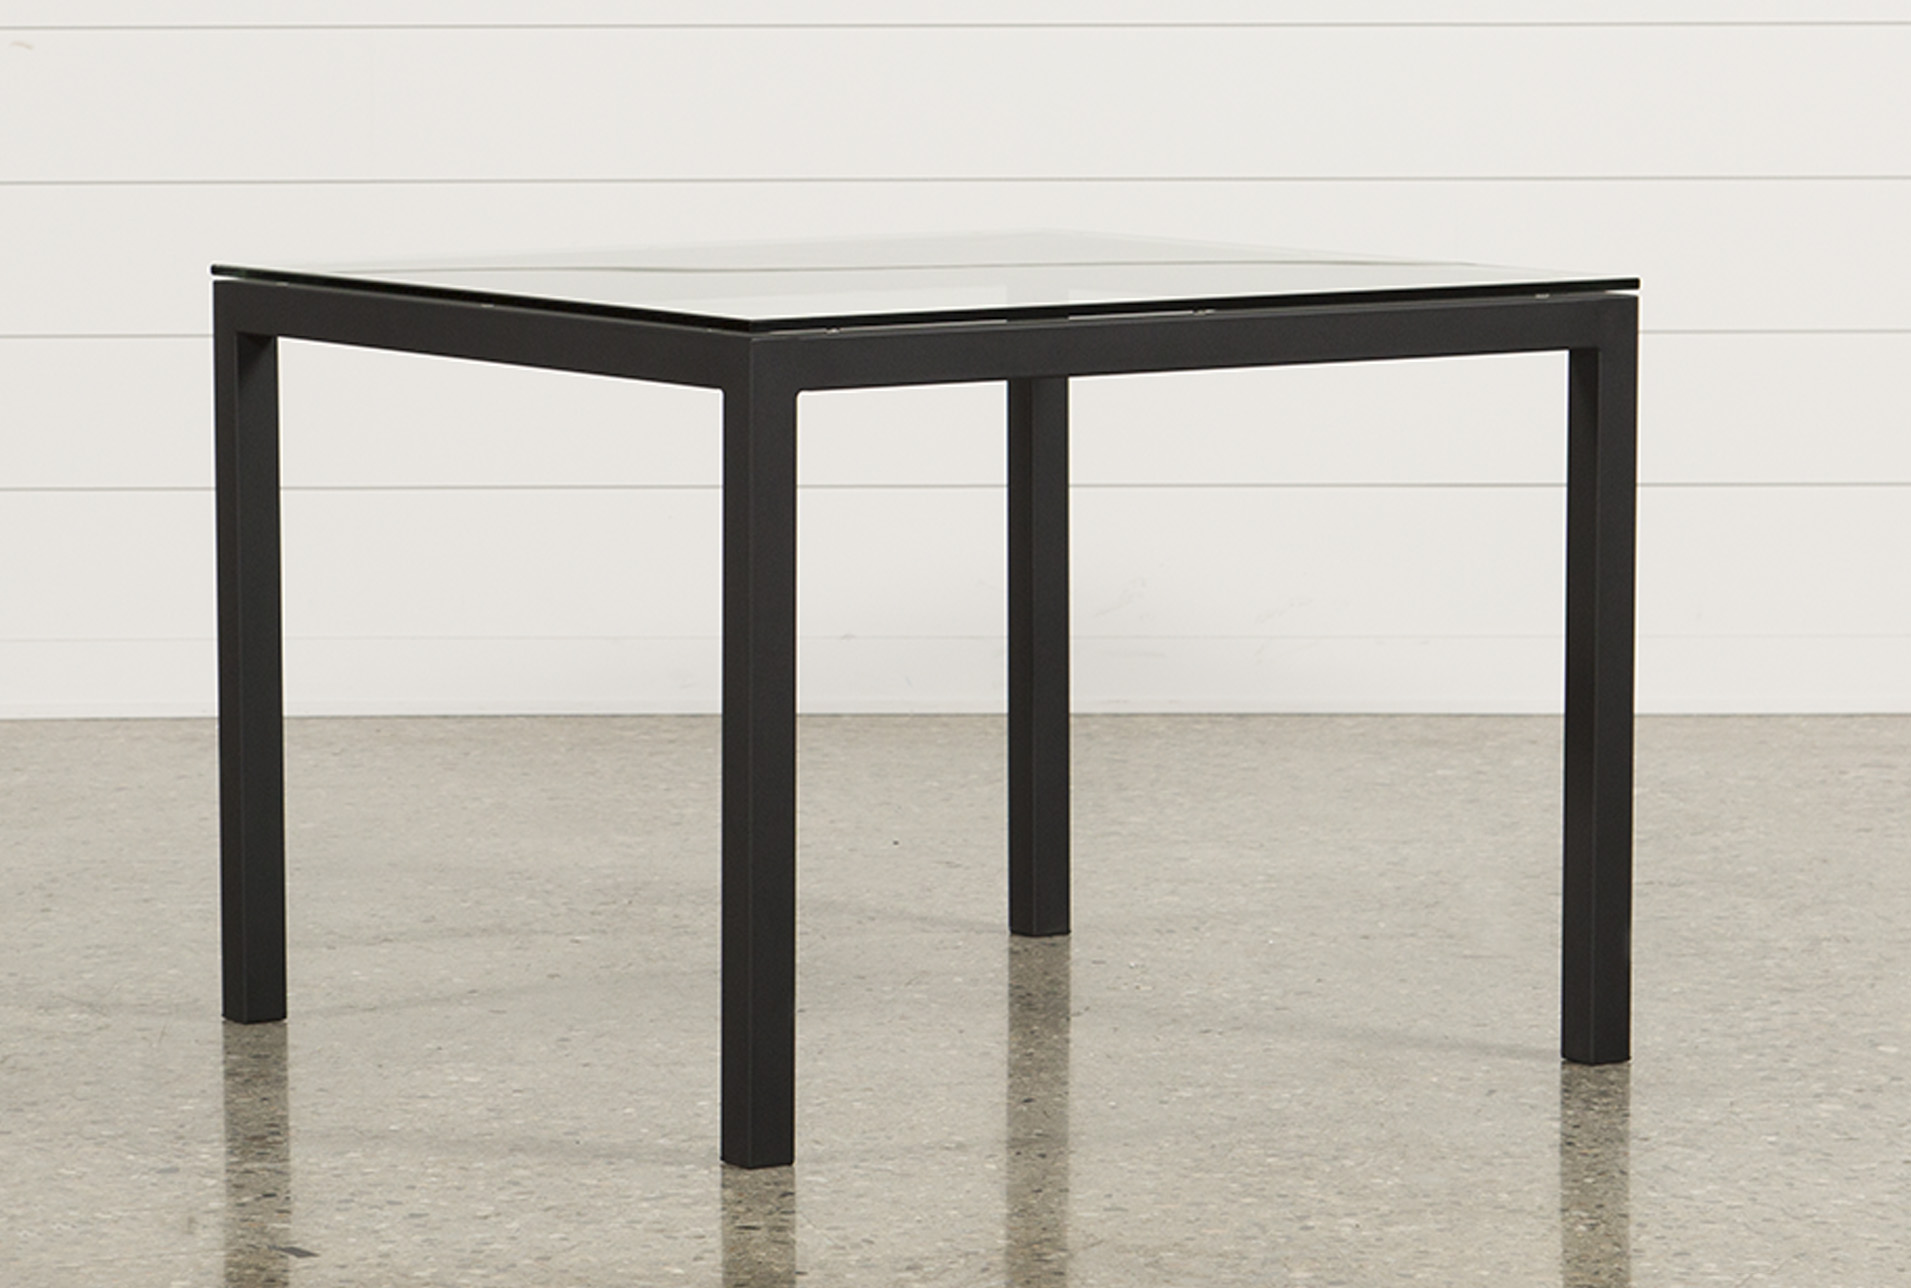 Charmant Ina Matte Black 40 Inch Square Dining Table W/Clear Glass   360